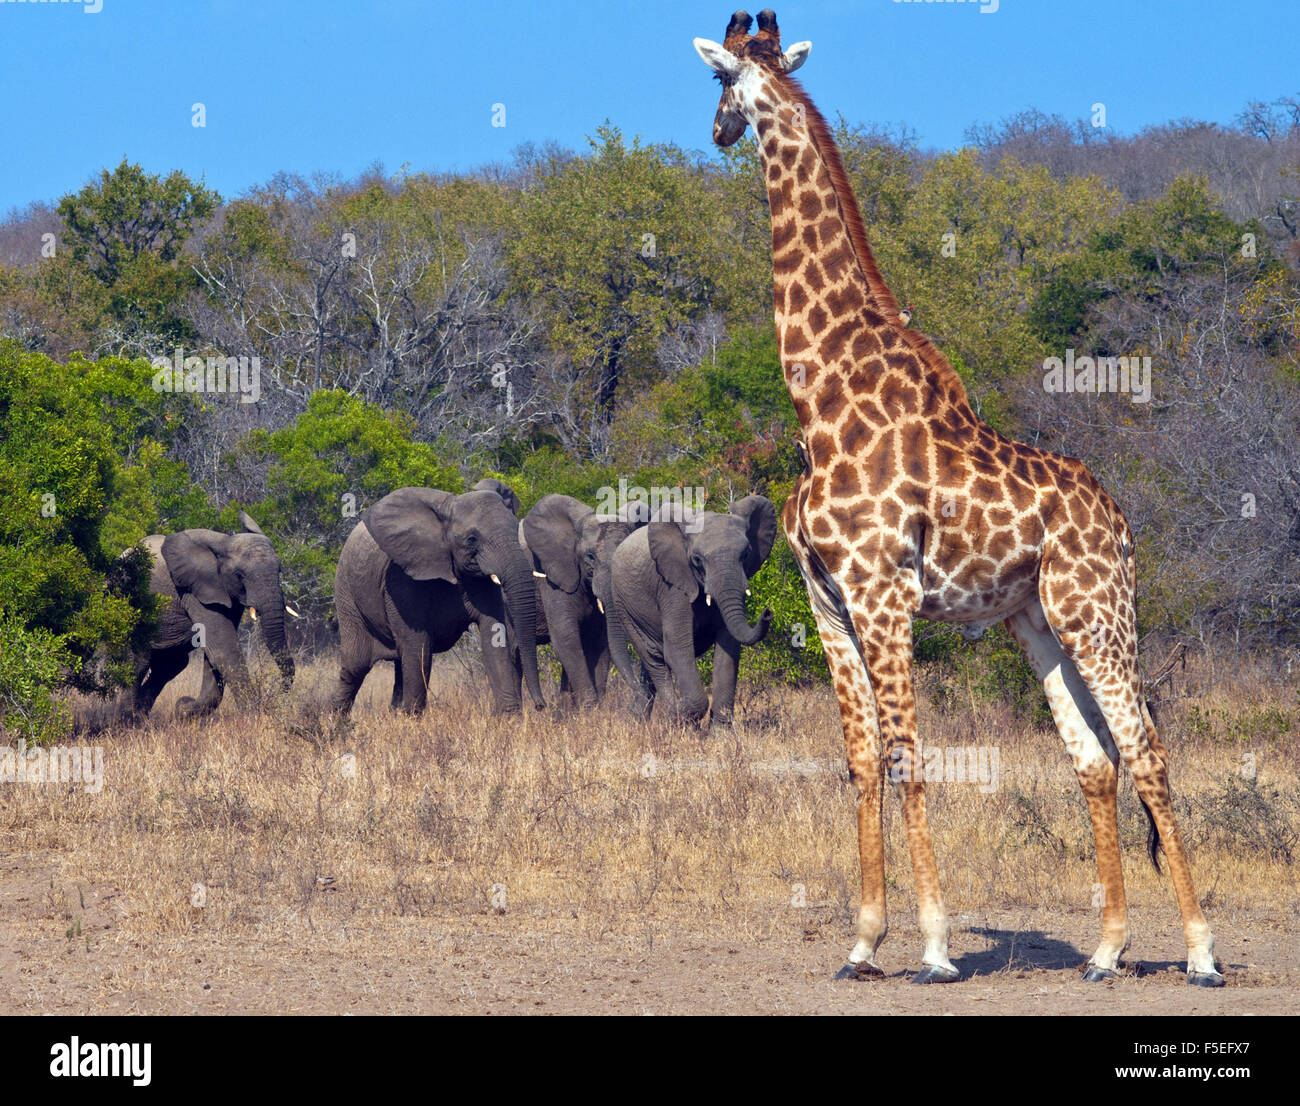 Giraffe and herd of elephants, South Africa Stock Photo